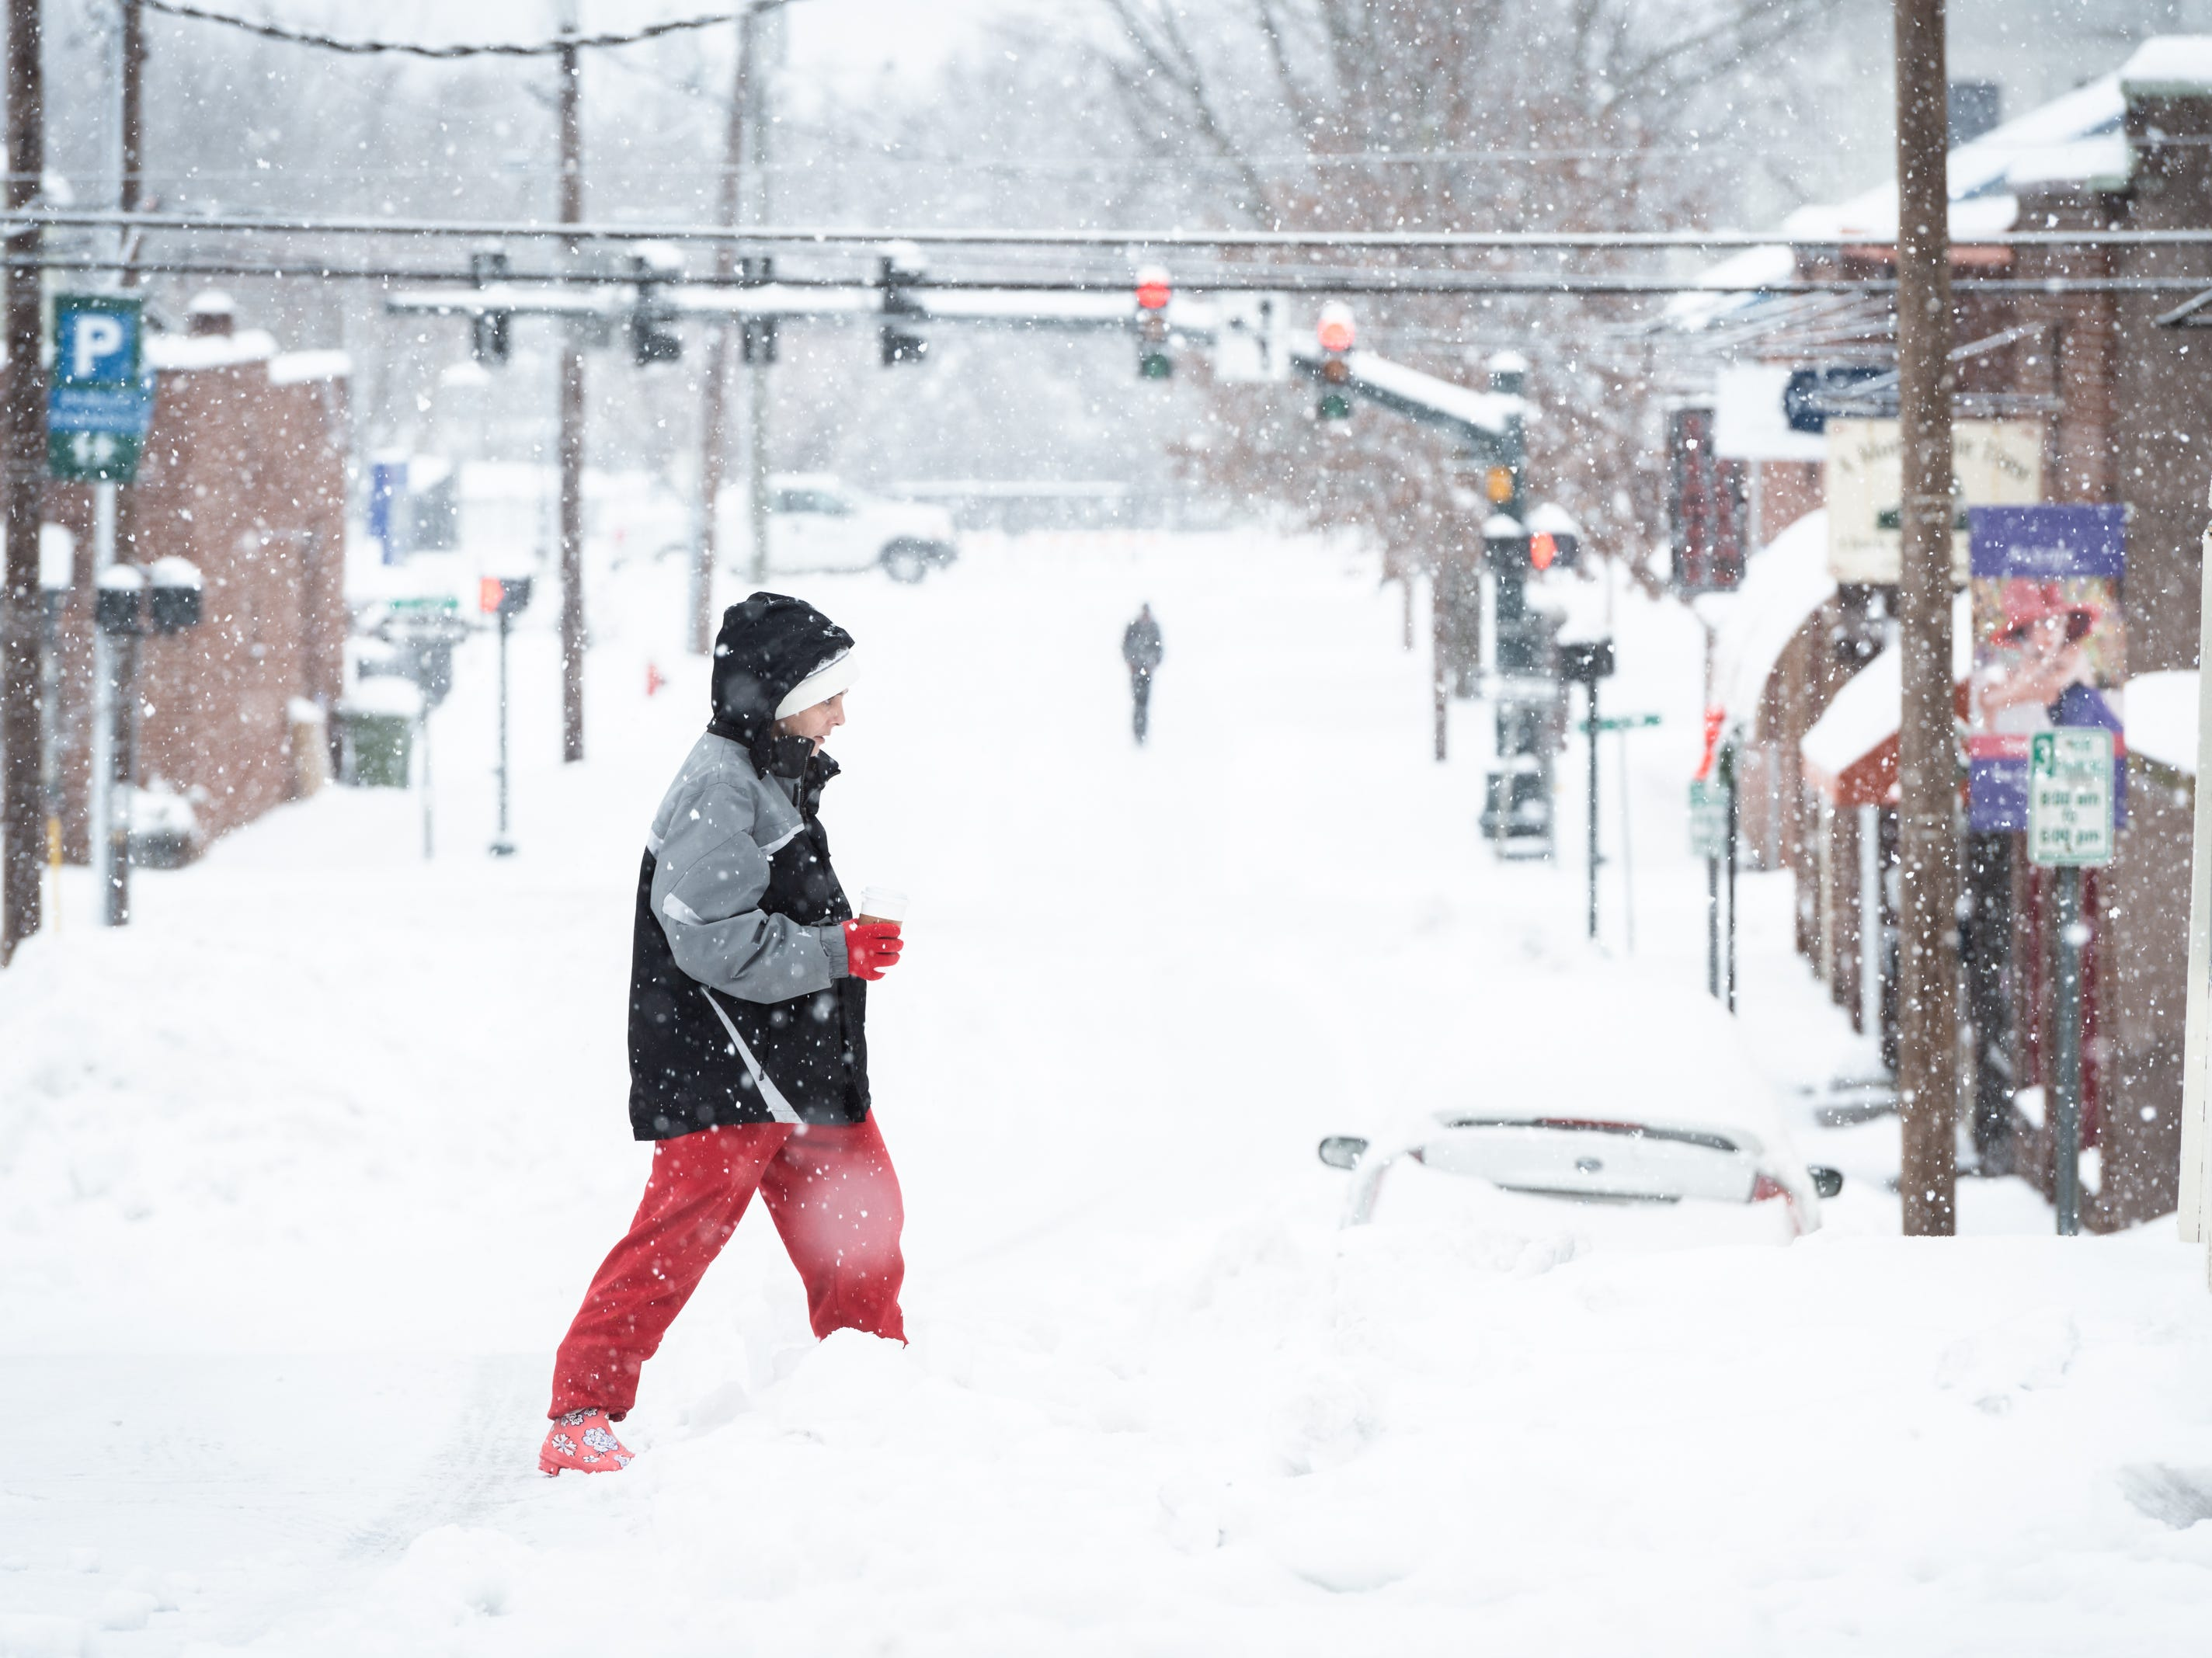 A pedestrian strolls down Main Street in Hendersonville after a night of heavy snowfall, accumulating 10-11 inches Dec. 9, 2018. At 5 p.m there were nearly 9,600 power outages.